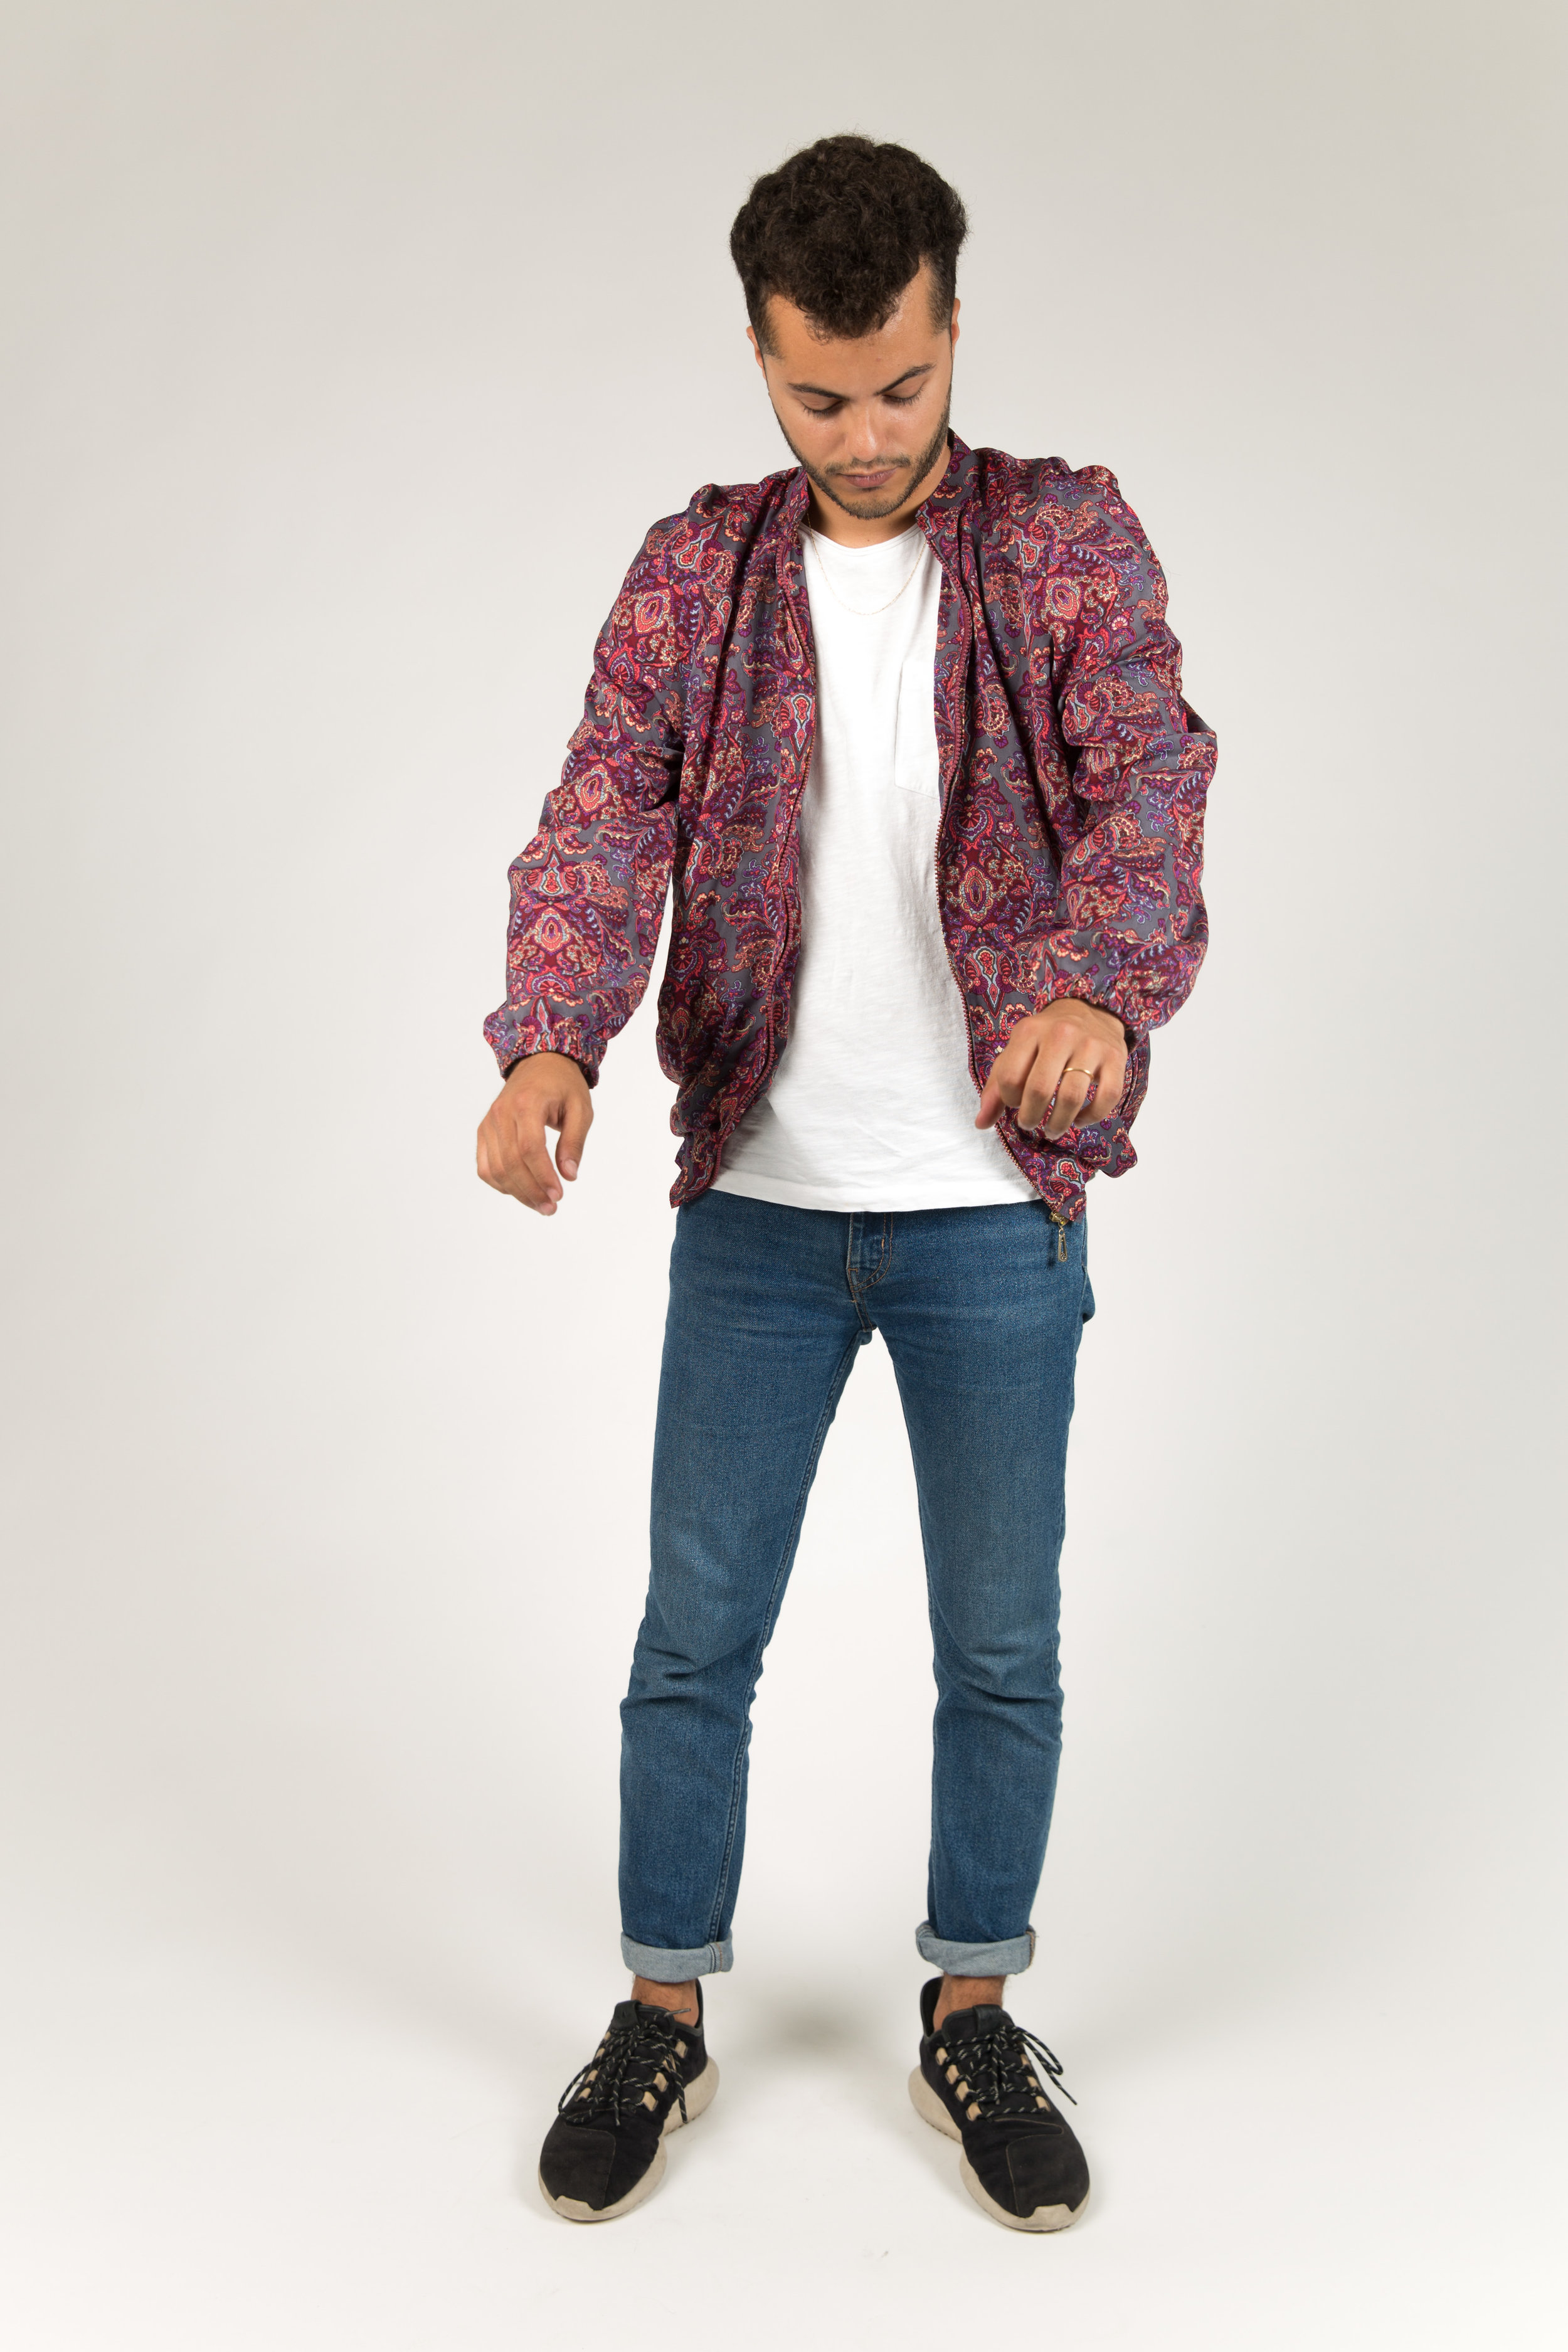 BECKY_PINK_MEN_BOMBER_CHARZA